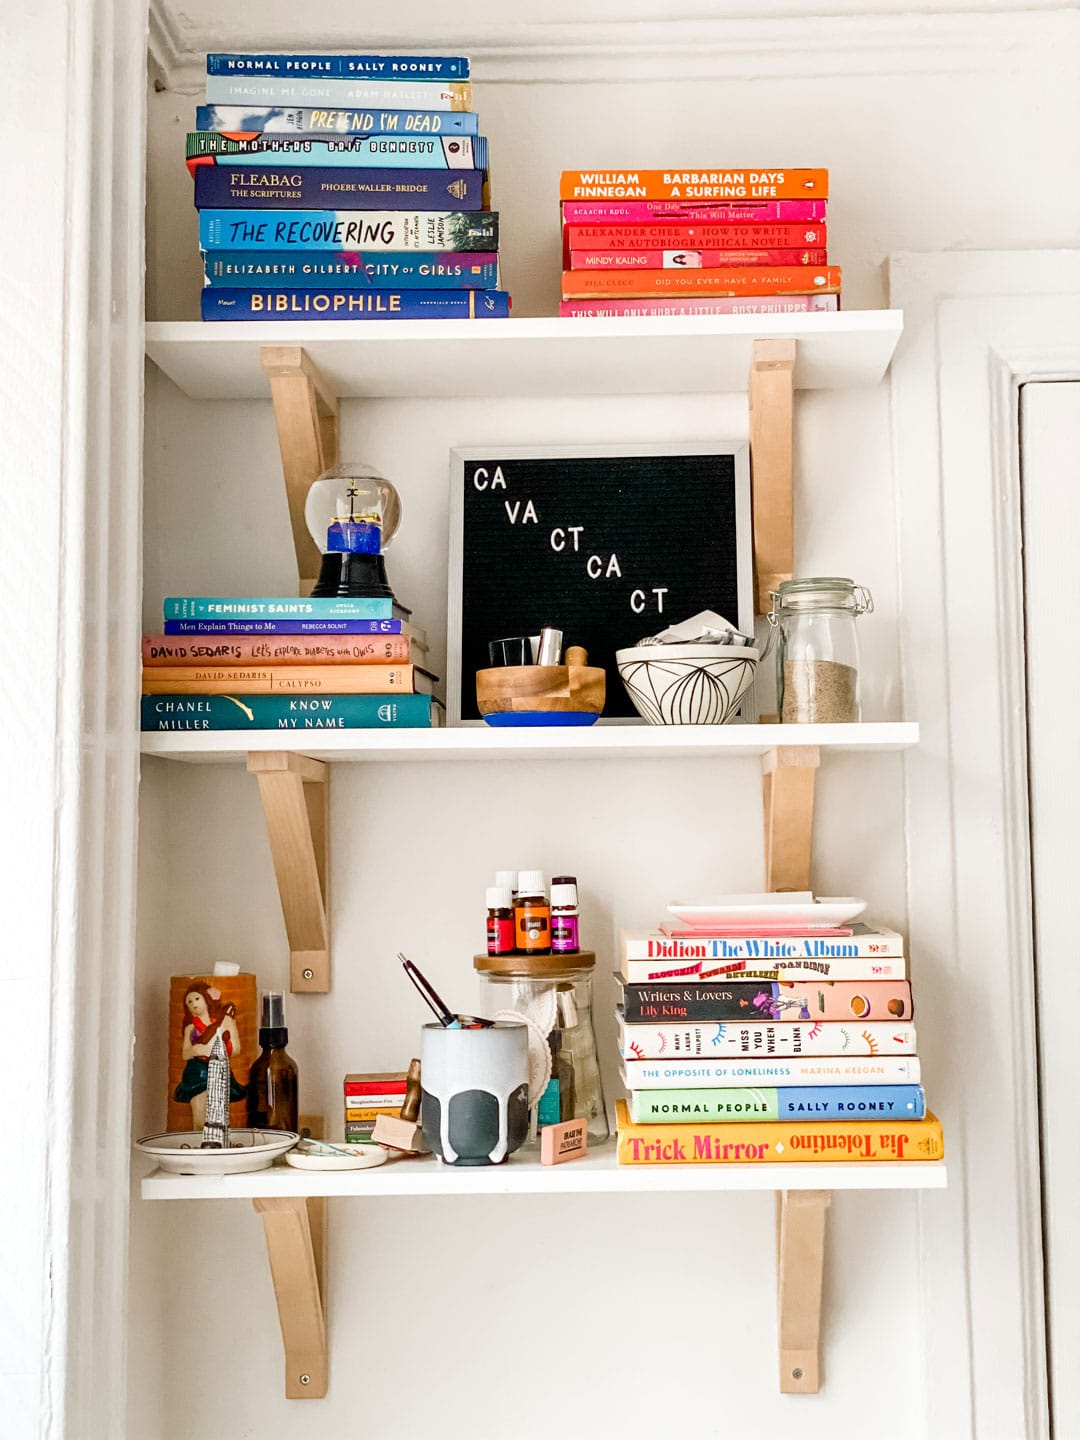 Lifestyle blogger Annie Diamond shares the edited book shelf of her daughter Madeline Diamond i